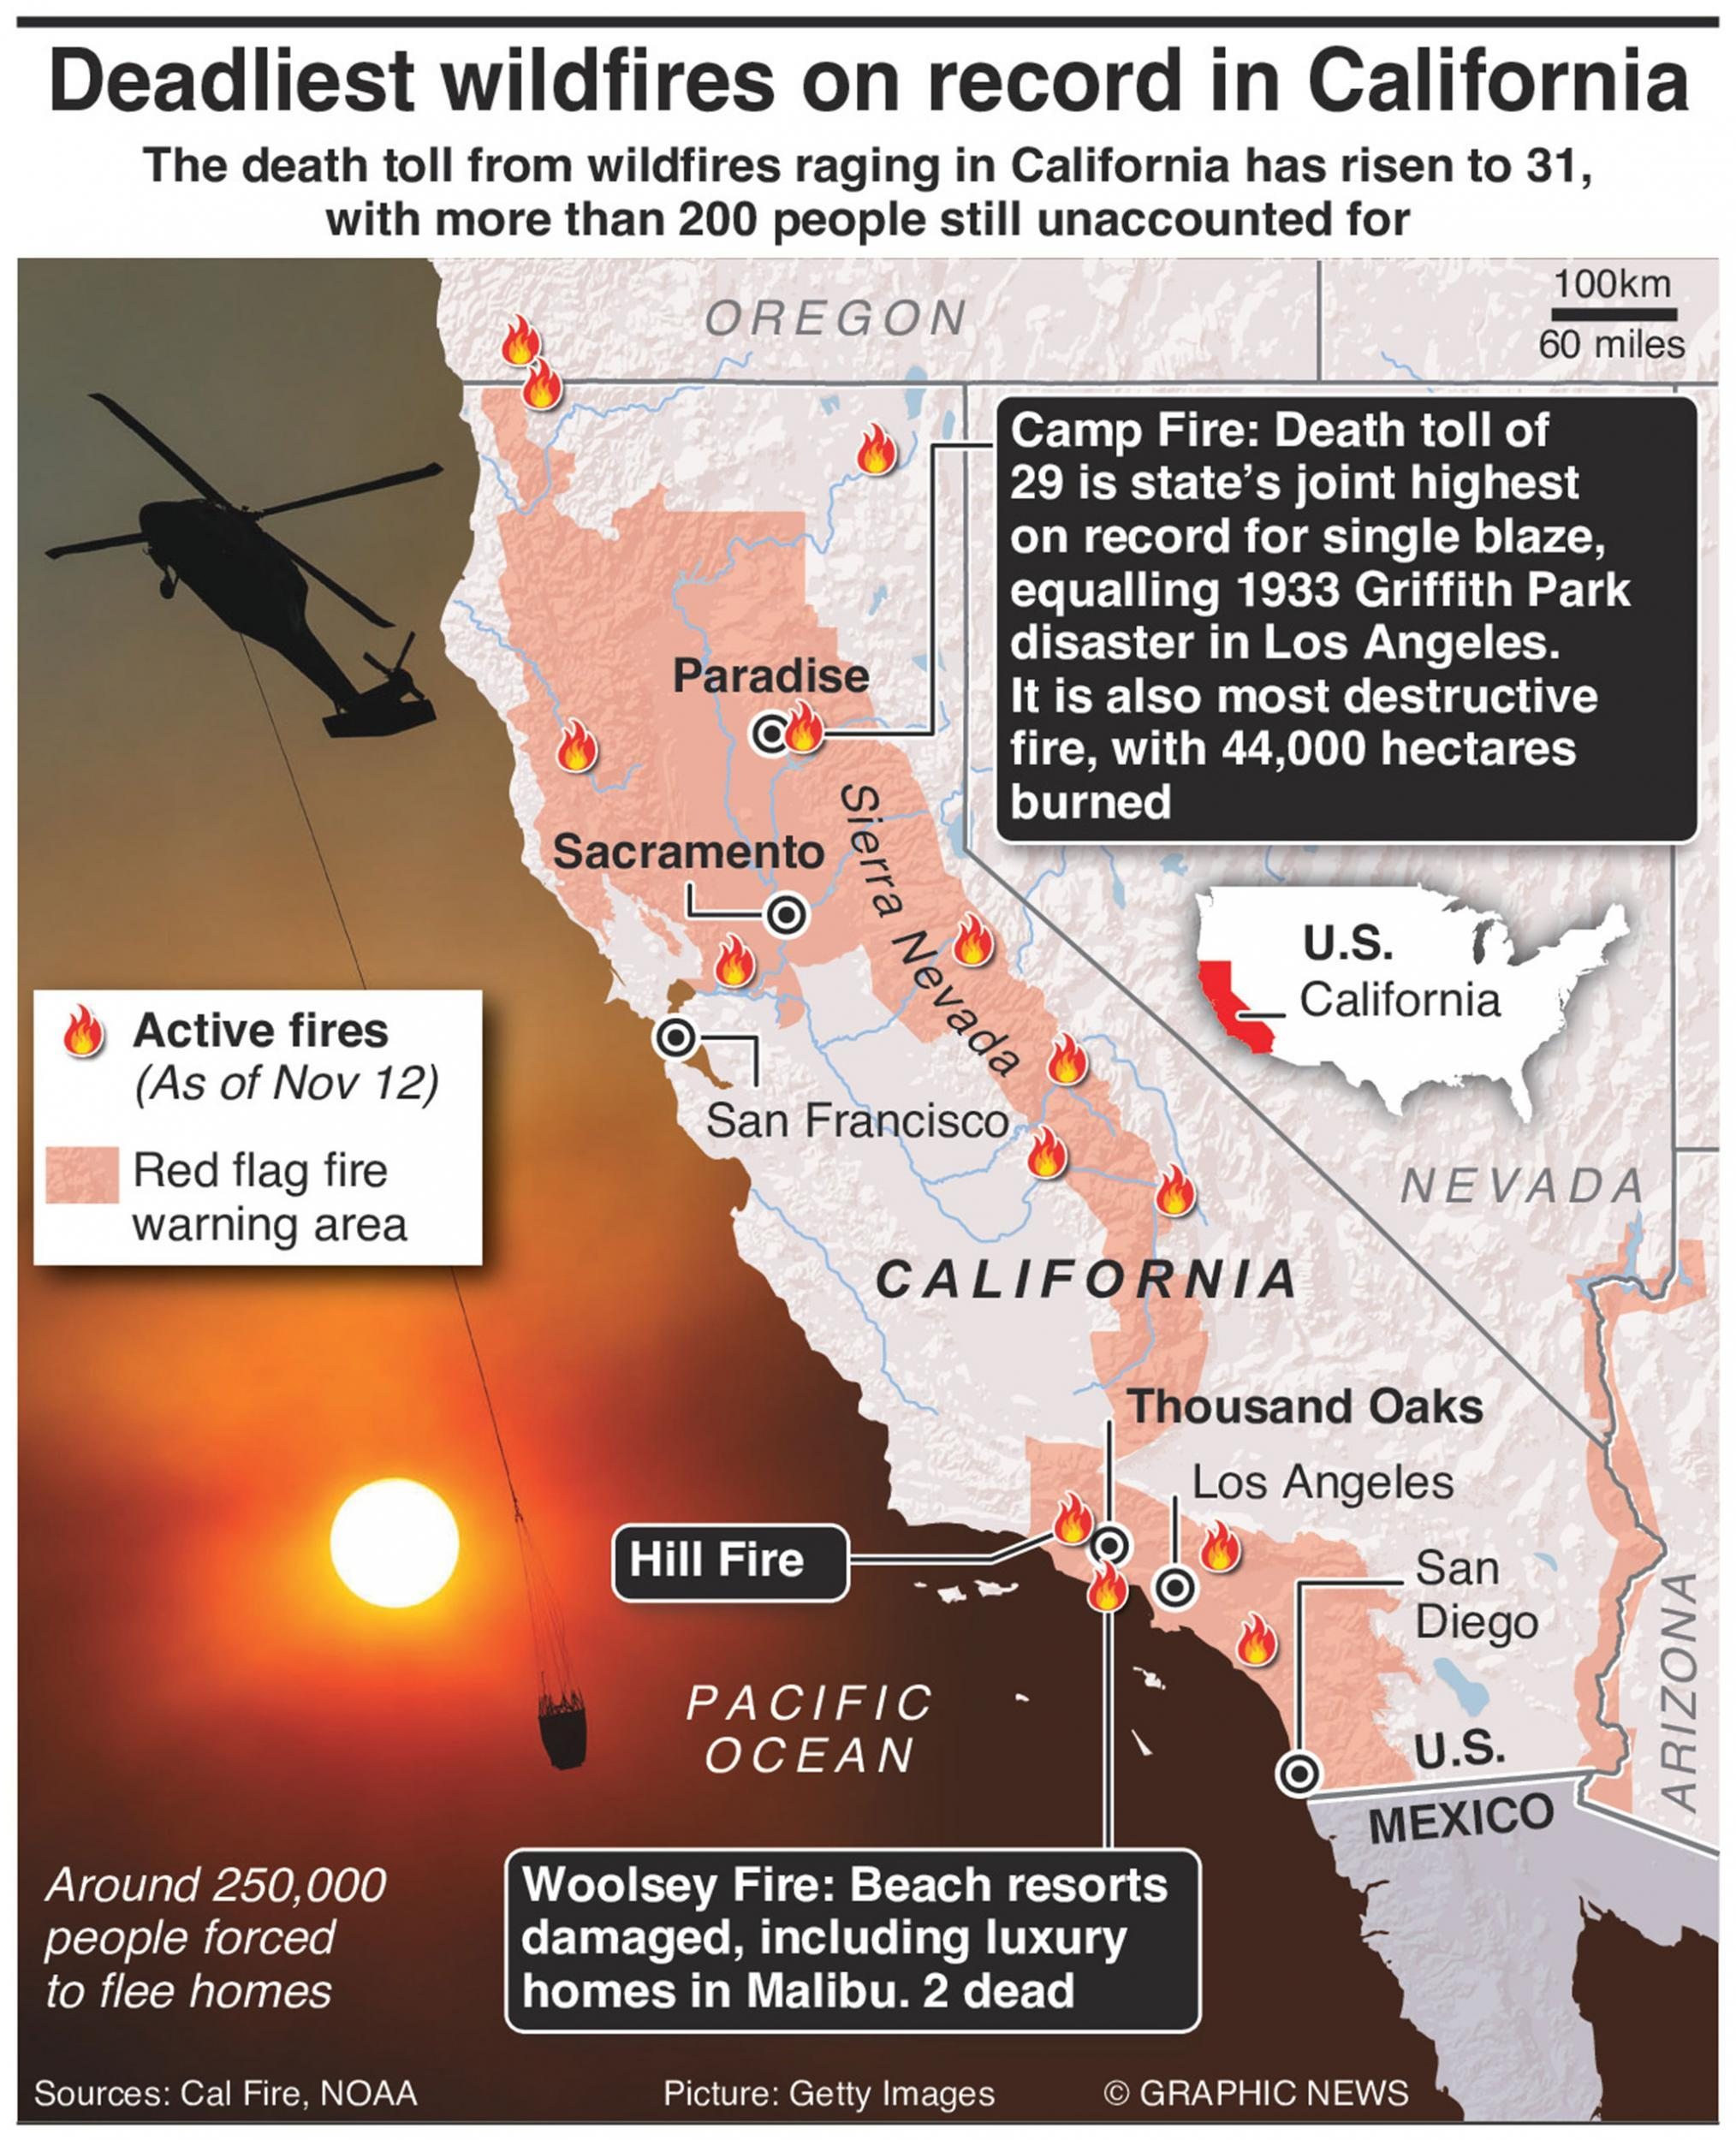 California wildfires: How 'devil winds' are making ... on camarillo springs california map, california mudslide map, california mudflow map, california wildfires current, california jade map, colorado wildfires 2013 map, california torrance los angeles map, california heat wave map, california water map, california wildlife map, california wildfires update, california earthquake map, california storm map, california landslide map, california radar map, california wildflower map, california bridge collapse map, china earthquake map, norcal california map, northern california map,